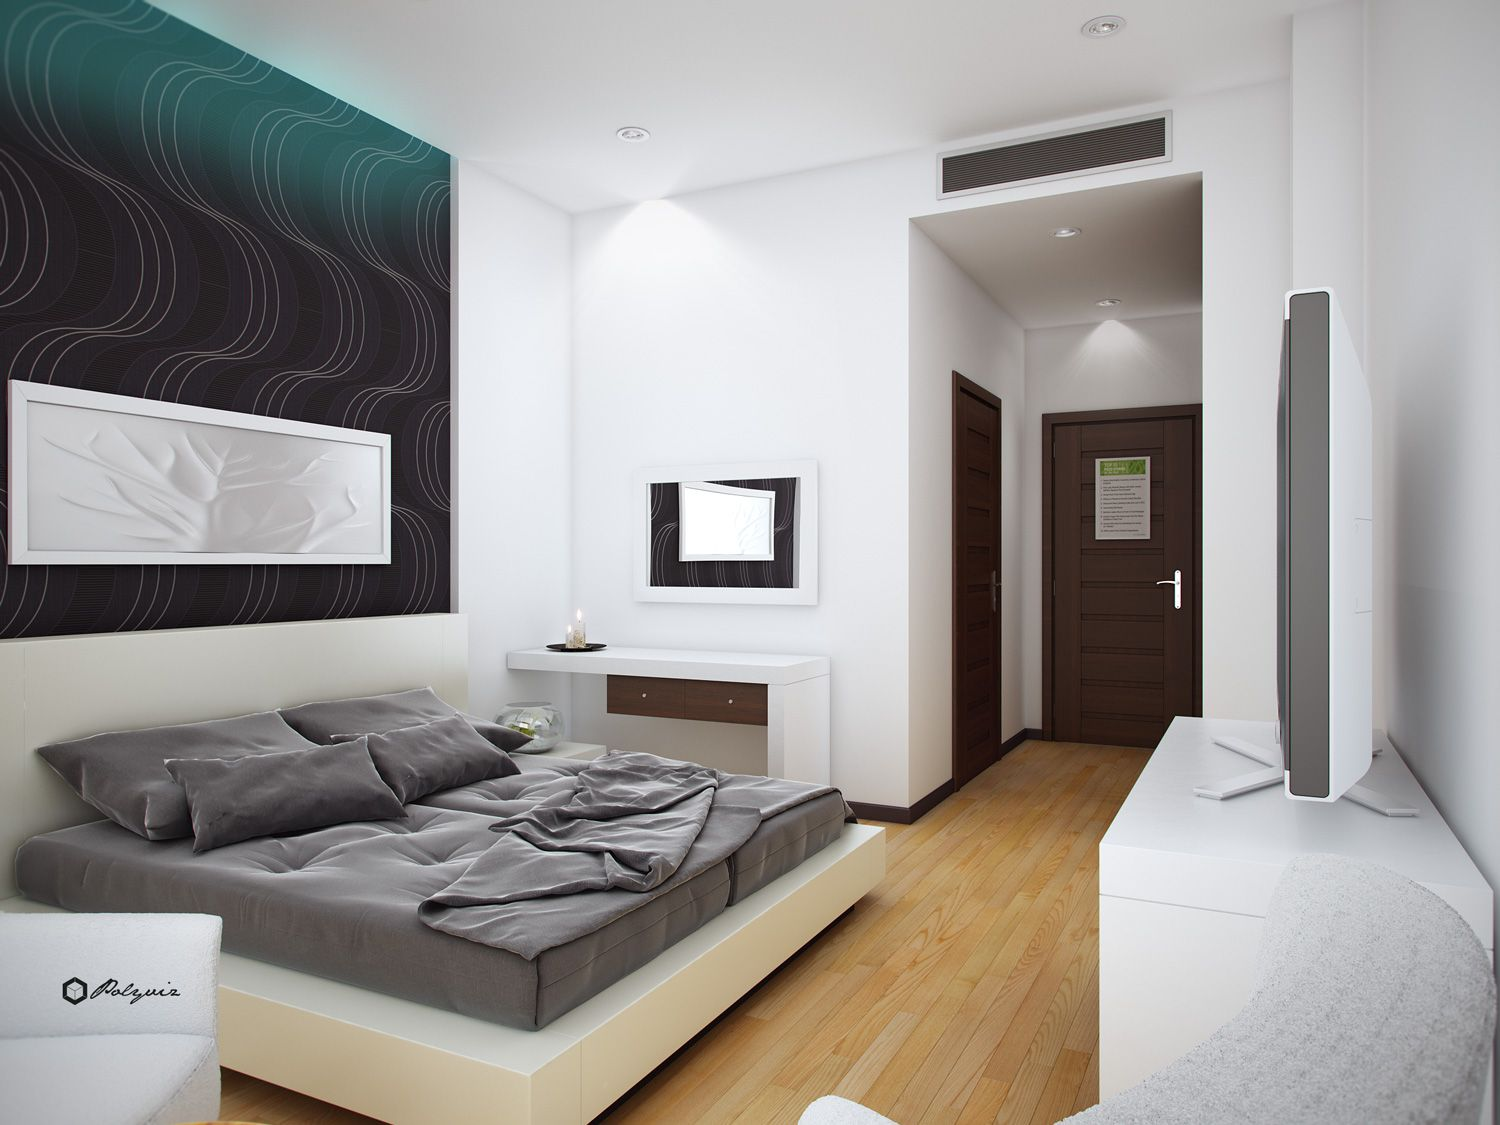 Modern hotel room design google search room design for Hotel room decor